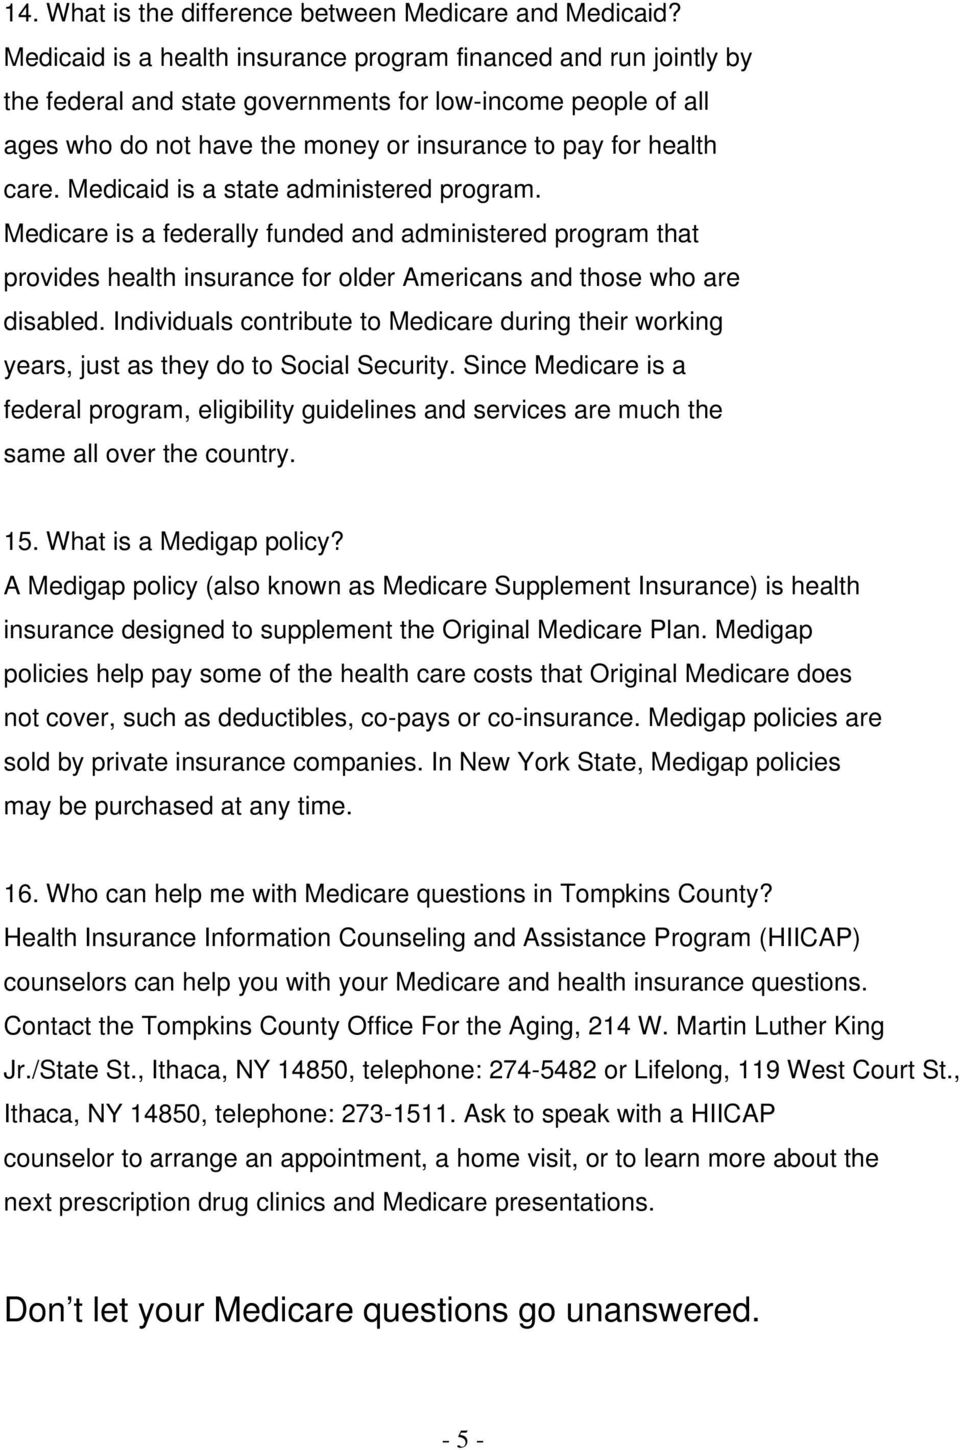 Medicaid is a state administered program. Medicare is a federally funded and administered program that provides health insurance for older Americans and those who are disabled.